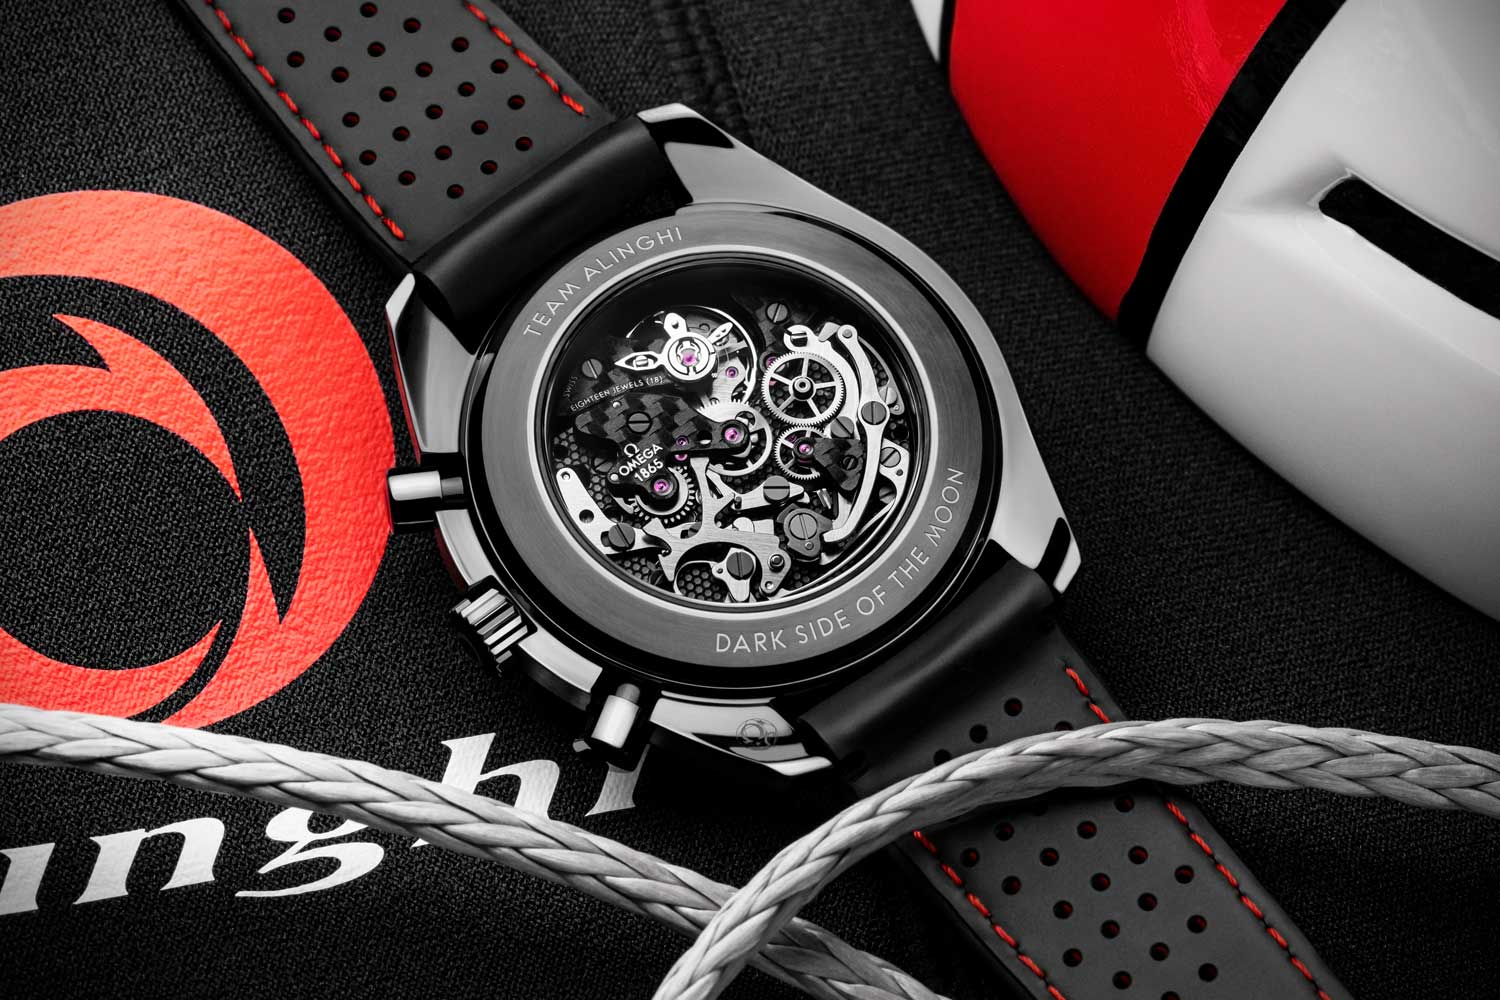 A caseback view of the Speedmaster Alinghi showing off the caliber 1865 which is also decorated using laser ablation to reflect the honeycomb effect the similar to the interior of the Alinghi boat's carbon hull